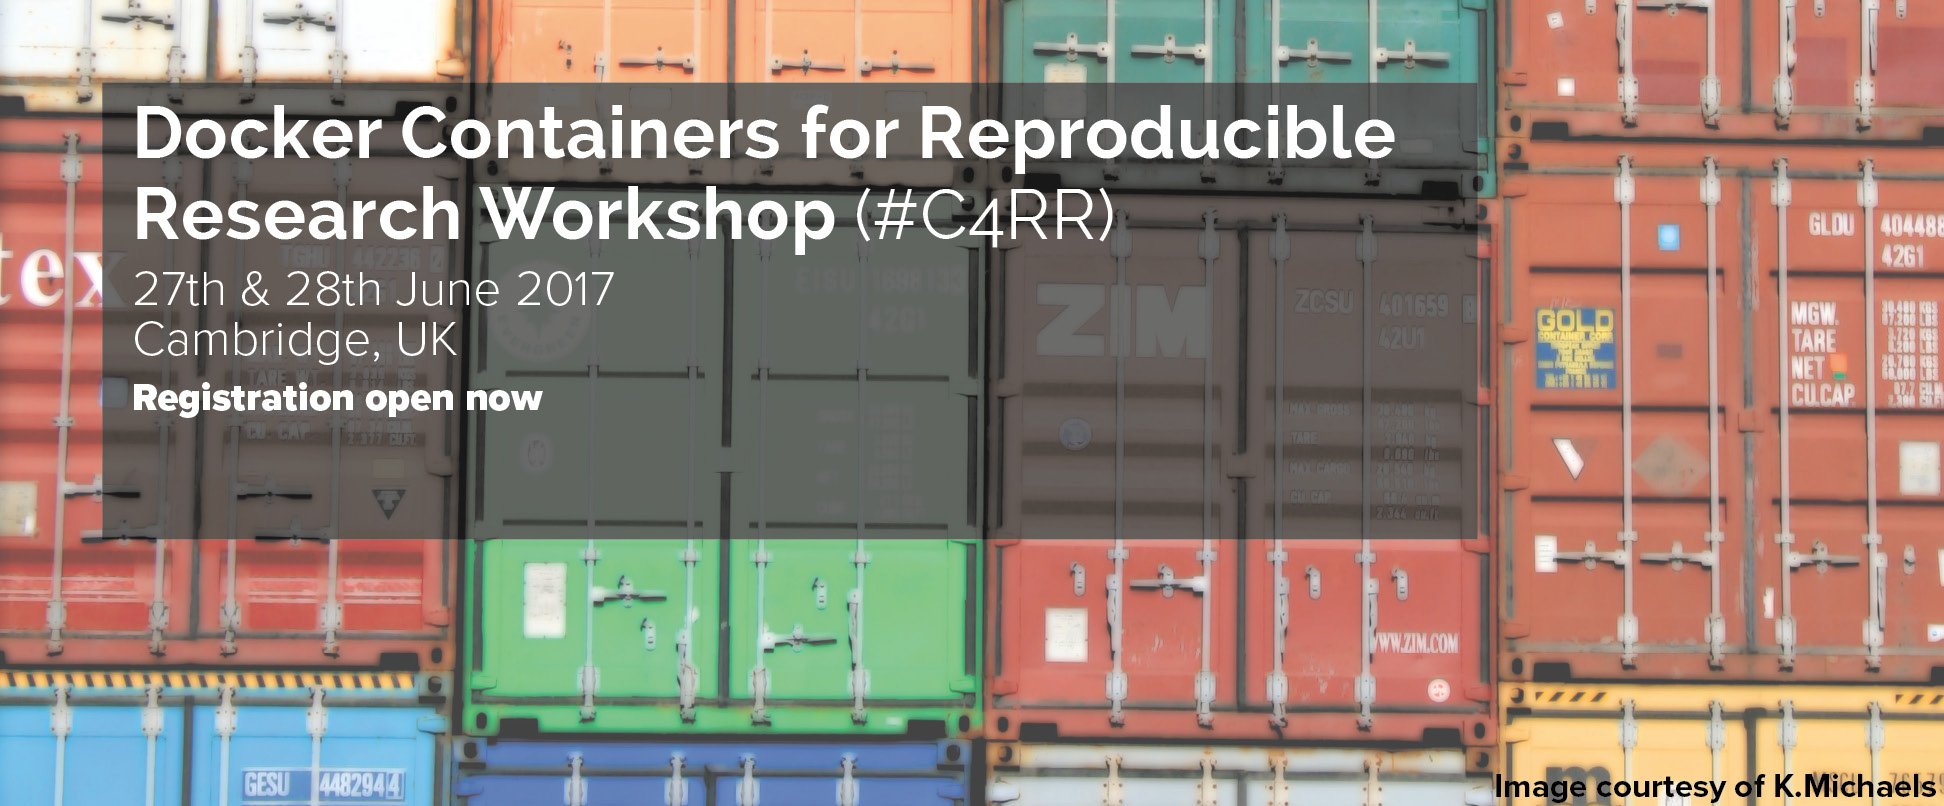 C4RR Docker Containers for Reproducible Research Workshop